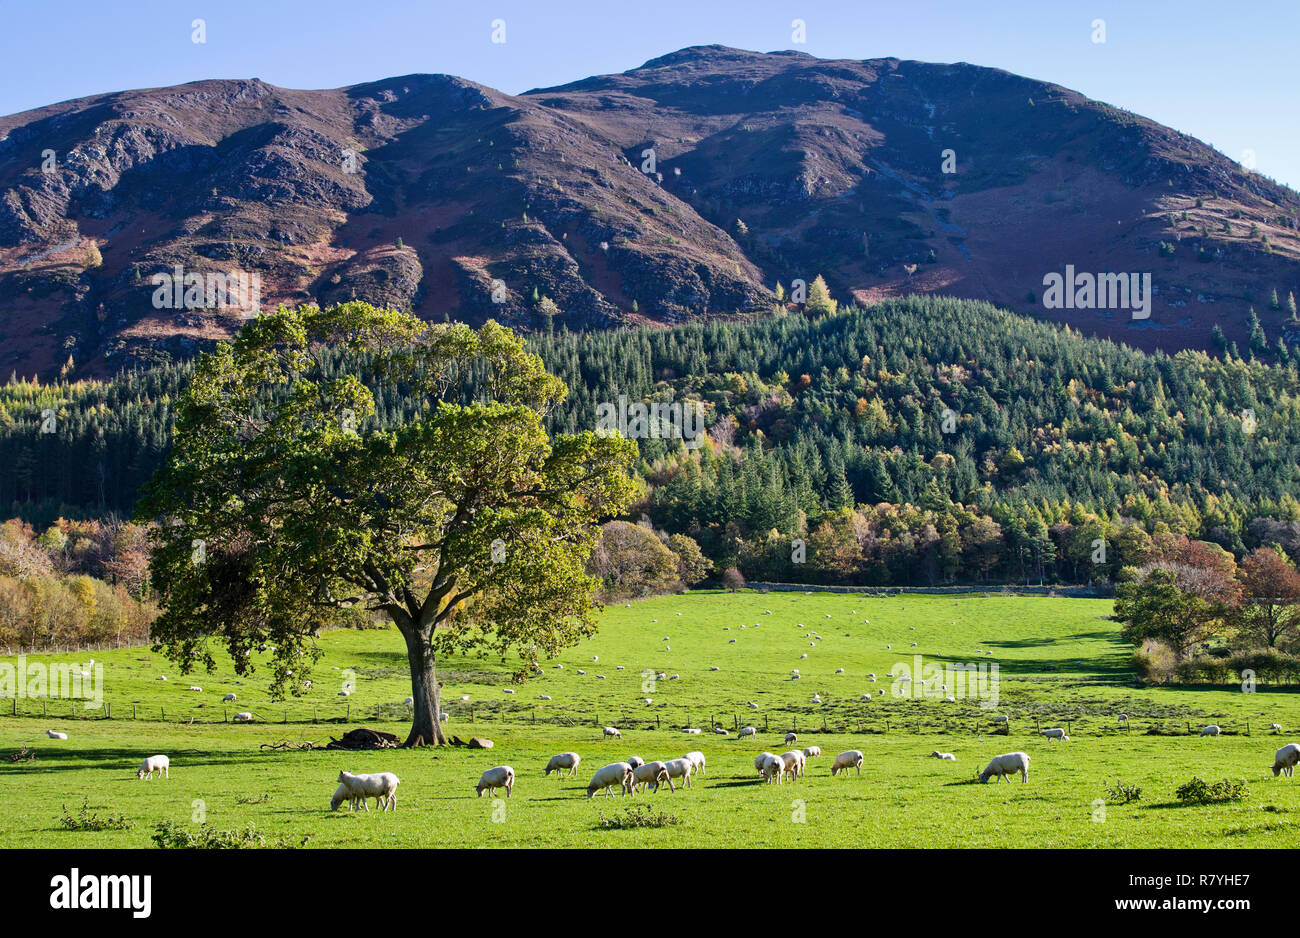 Sheep grazing in autumn sunshine in beautiful meadow beneath partly forested slopes of Ullock Pike, Lake District, Cumbria, England UK. Stock Photo